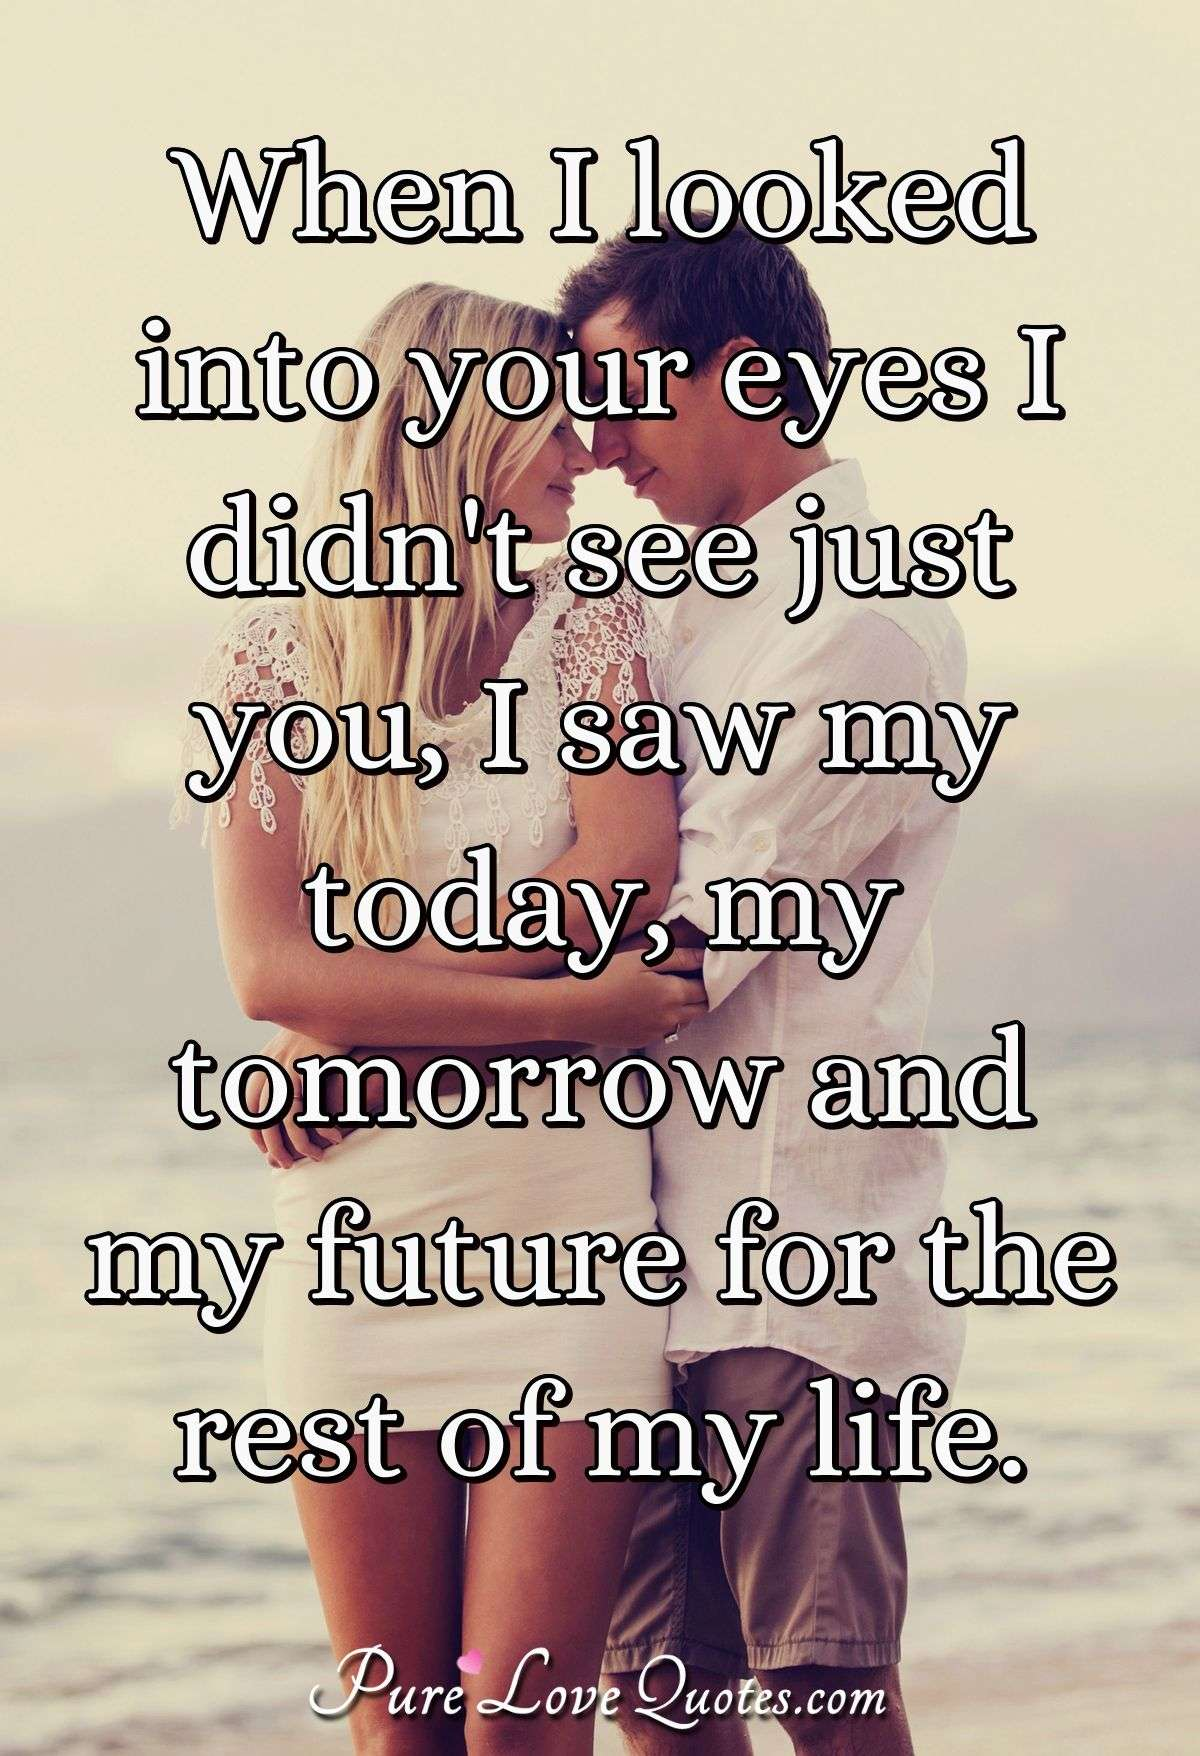 When I looked into your eyes I didn't see just you, I saw my today ...